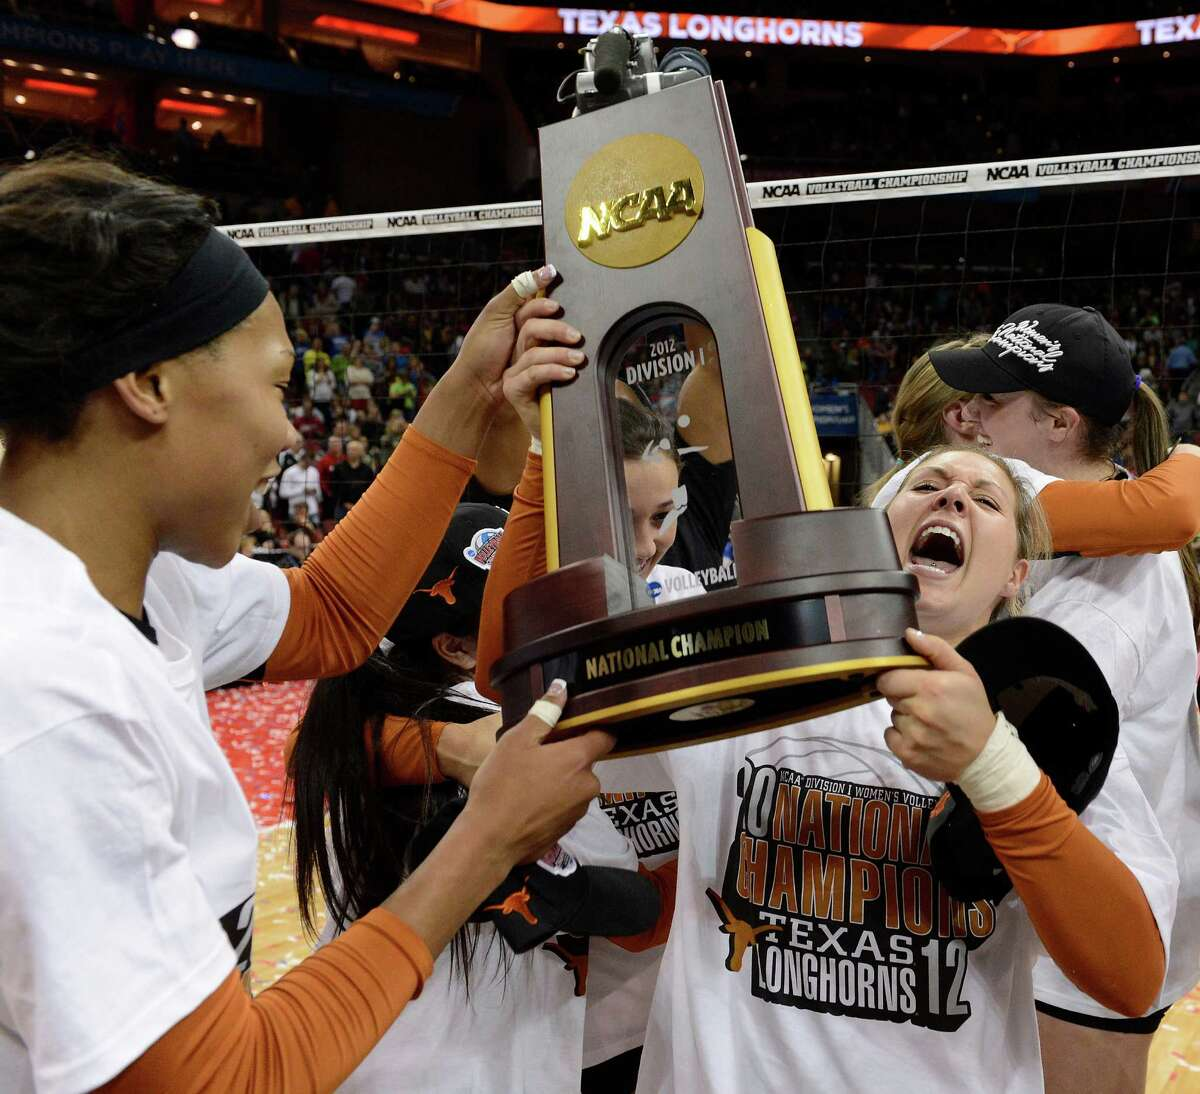 CORRECTS TO KHAT BELL NOT BAILEY WEBSTER - Texas' Megan Futch, right, and Khat Bell, left, raise the championship trophy after their victory over Oregon during the NCAA college women's volleyball tournament on Saturday, Dec. 15, 2012, in Louisville, Ky. (AP Photo/Timothy D. Easley)